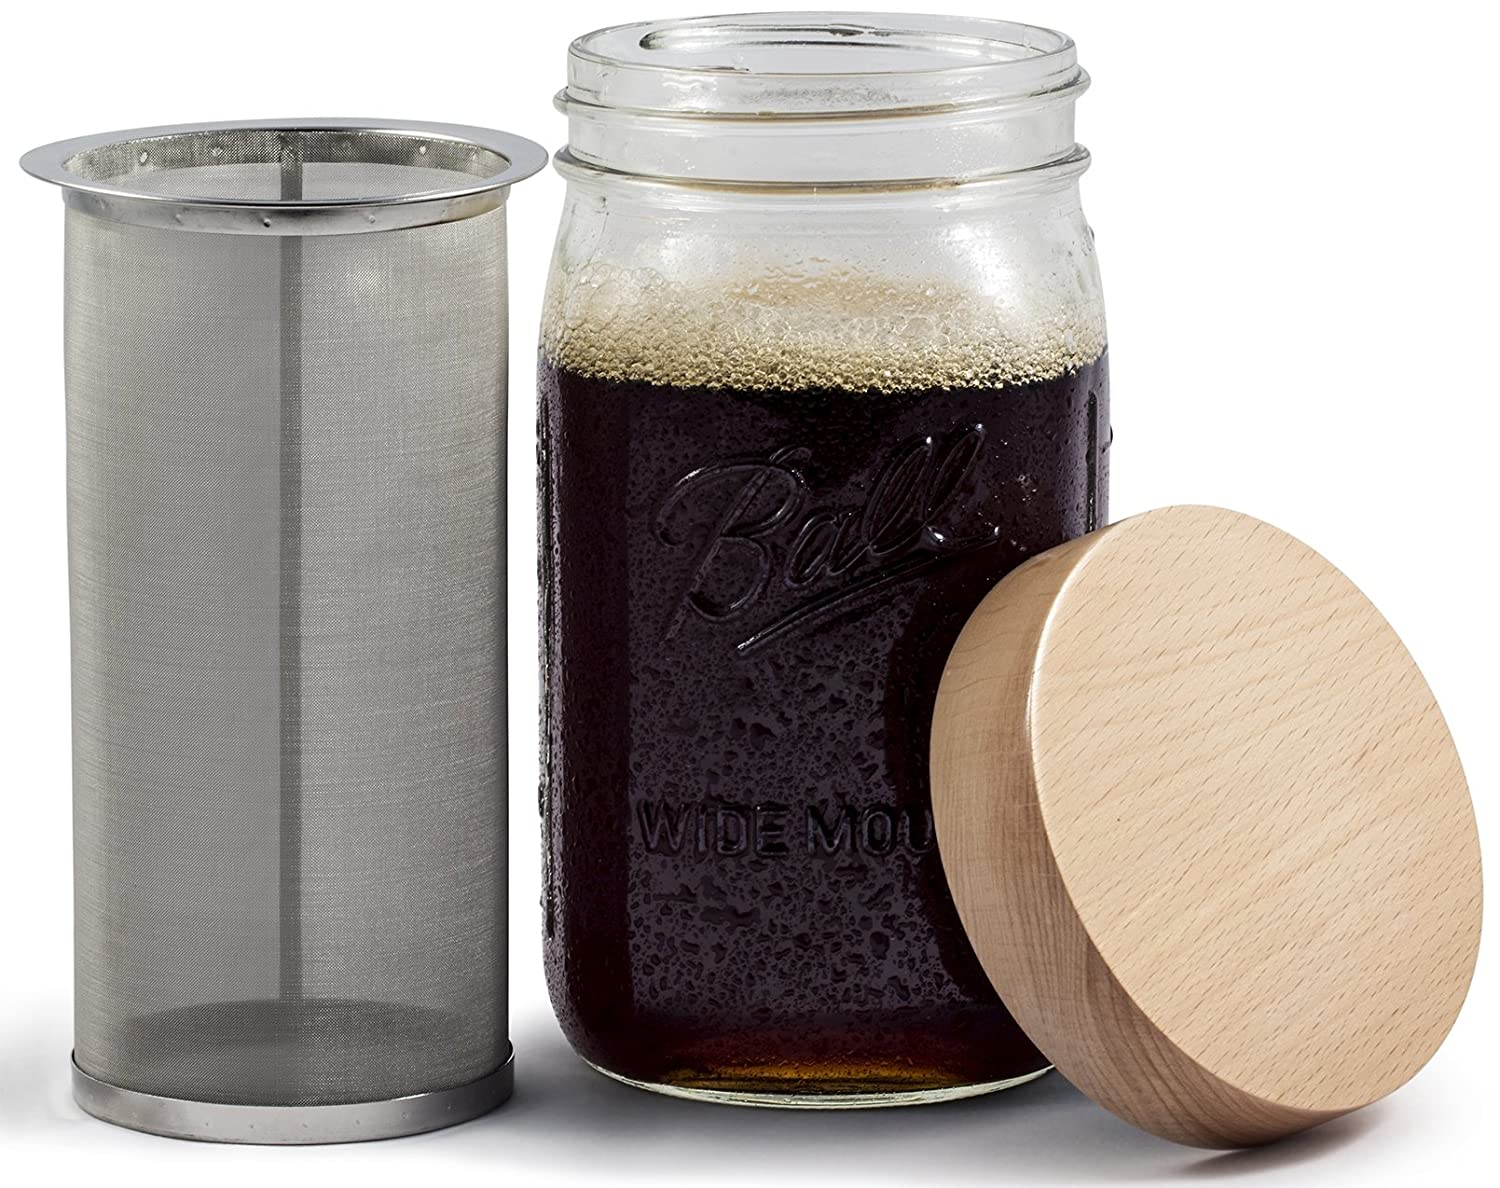 Mason Jar Cold Brew Coffee Maker & Iced Tea Maker | Quart (32oz) | Cold Brew System With Oak Wood Lid & Stainless Steel Filter | by Simple Life Cycle (Oak Wood, 32oz) CB32